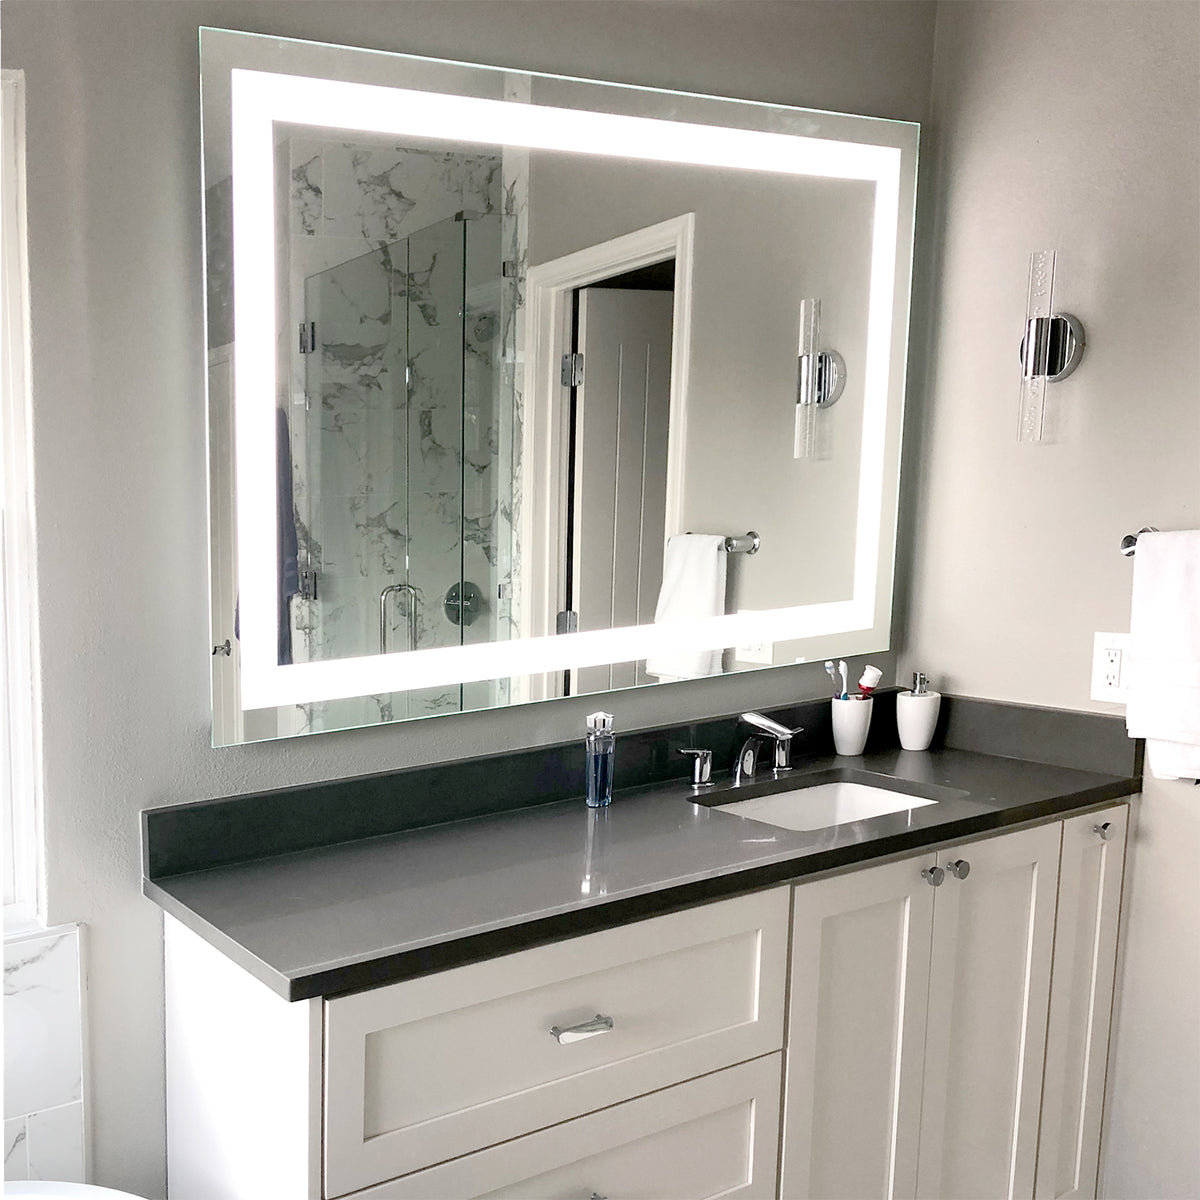 Front Lighted Led Bathroom Vanity Mirror 60 X 40 Rectangular Mirrors Marble